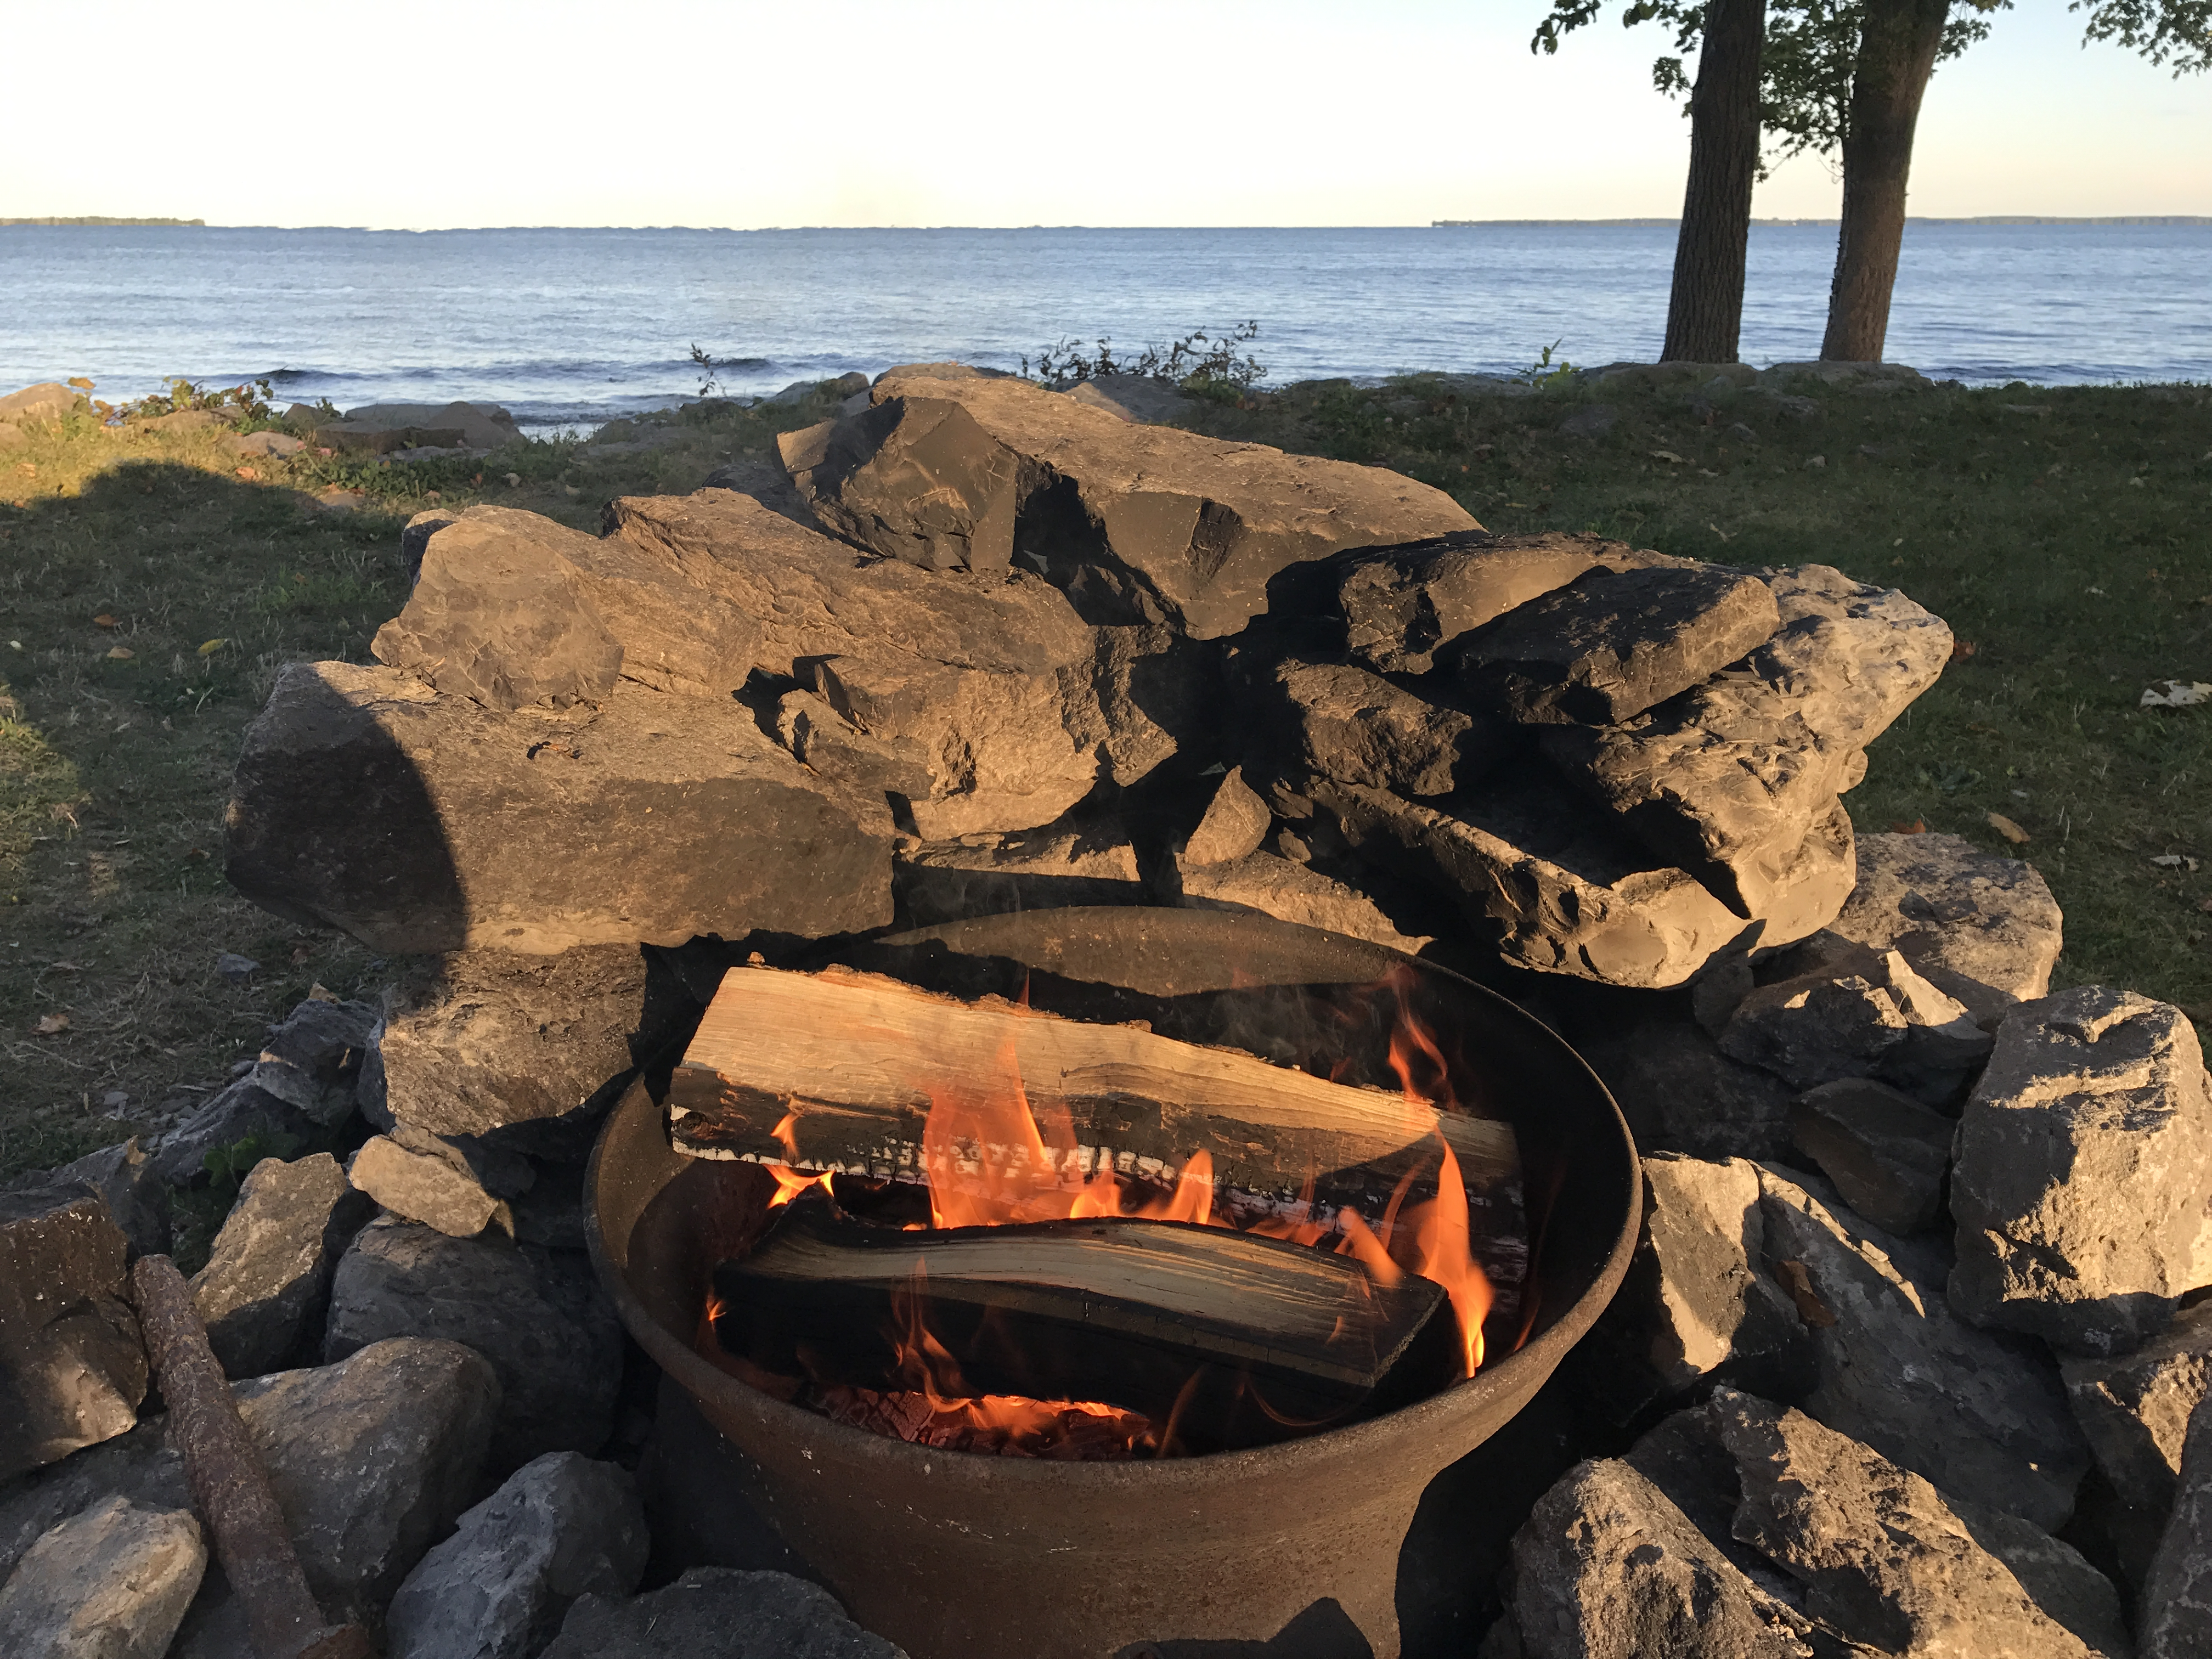 Camping and Back Pain